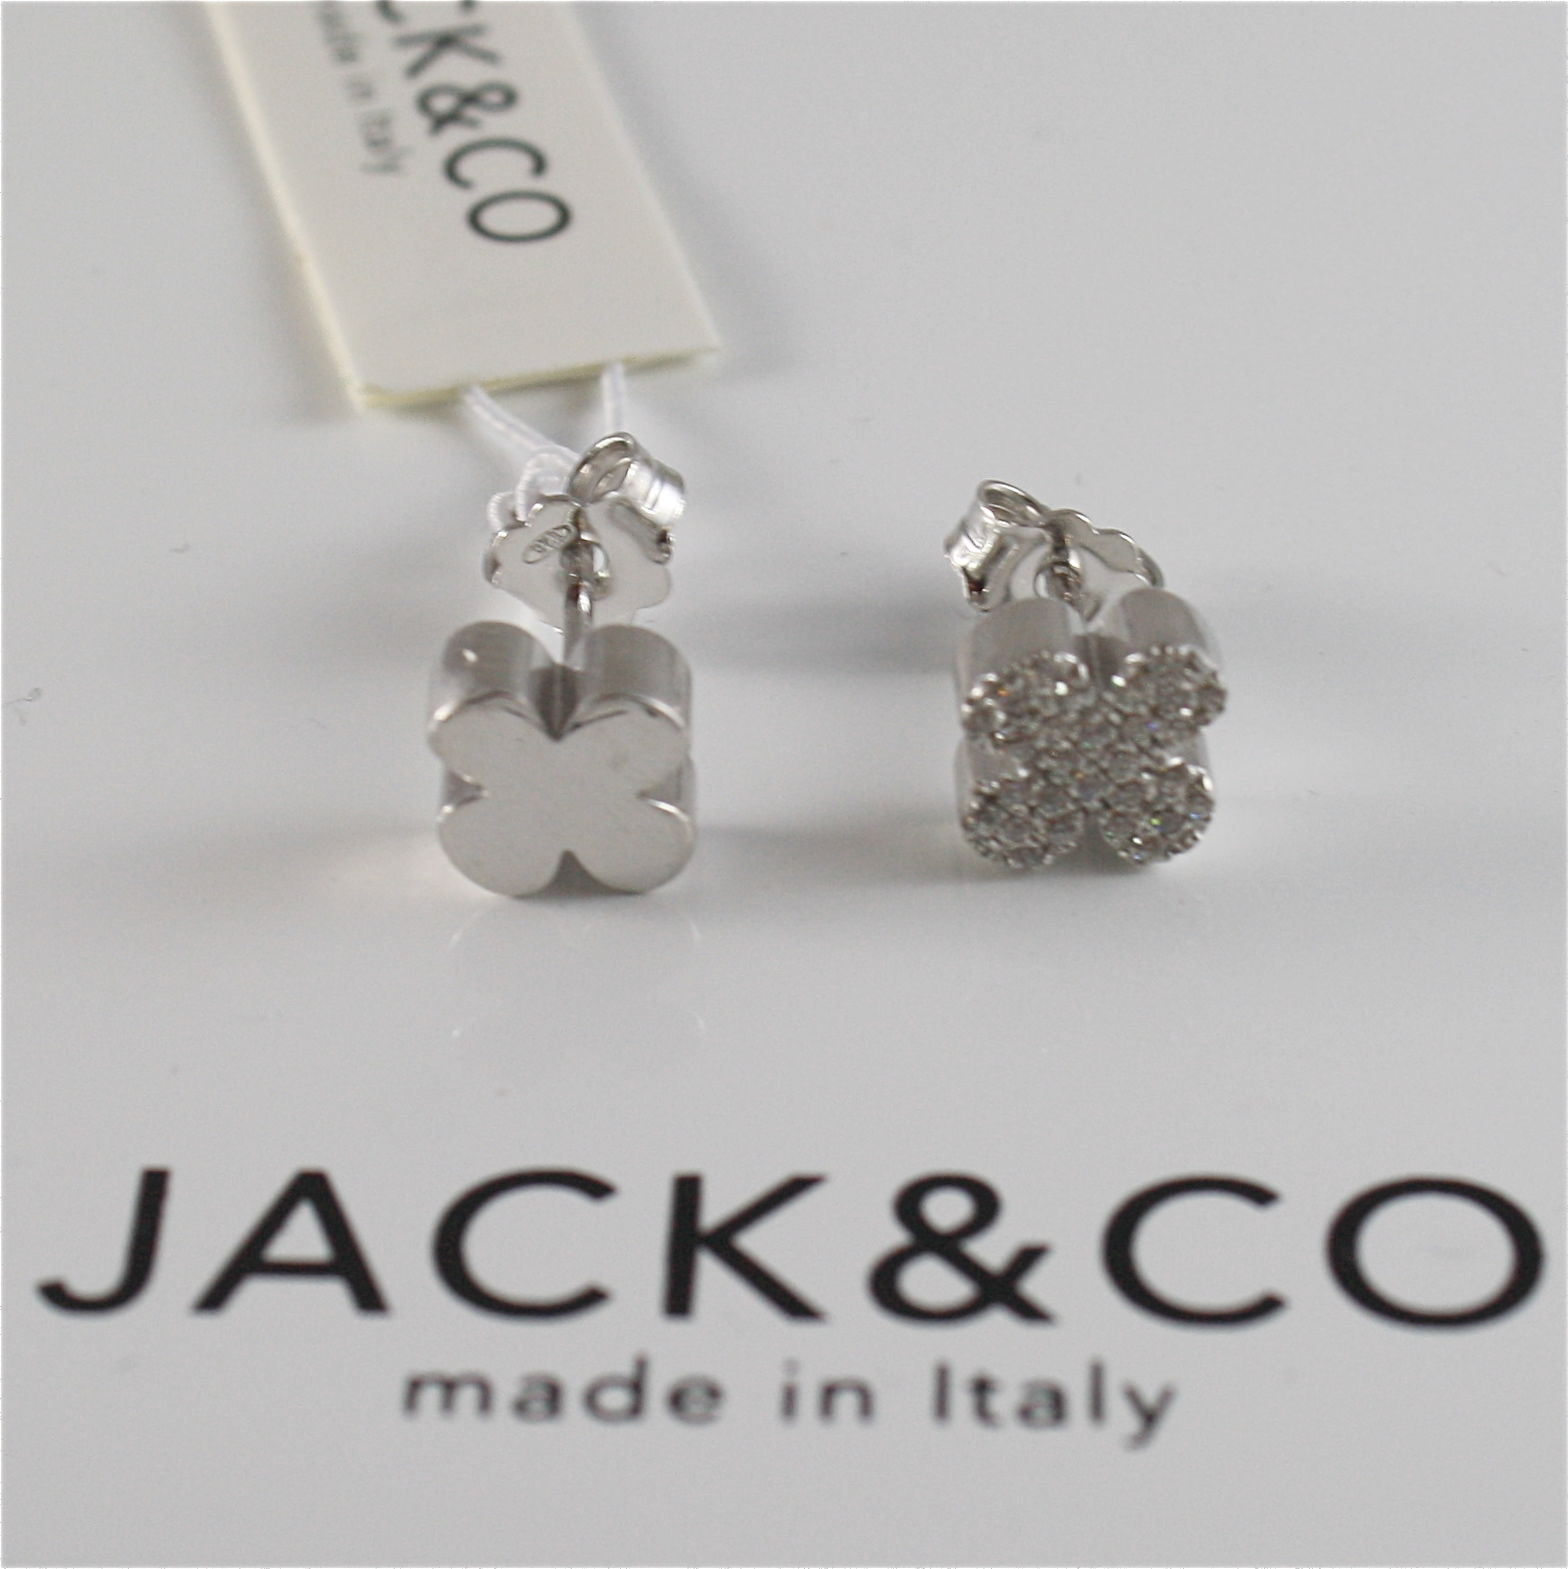 925 RHODIUM SILVER JACK&CO EARRINGS WITH FOUR LEAF CLOVER LUSTER MADE IN ITALY